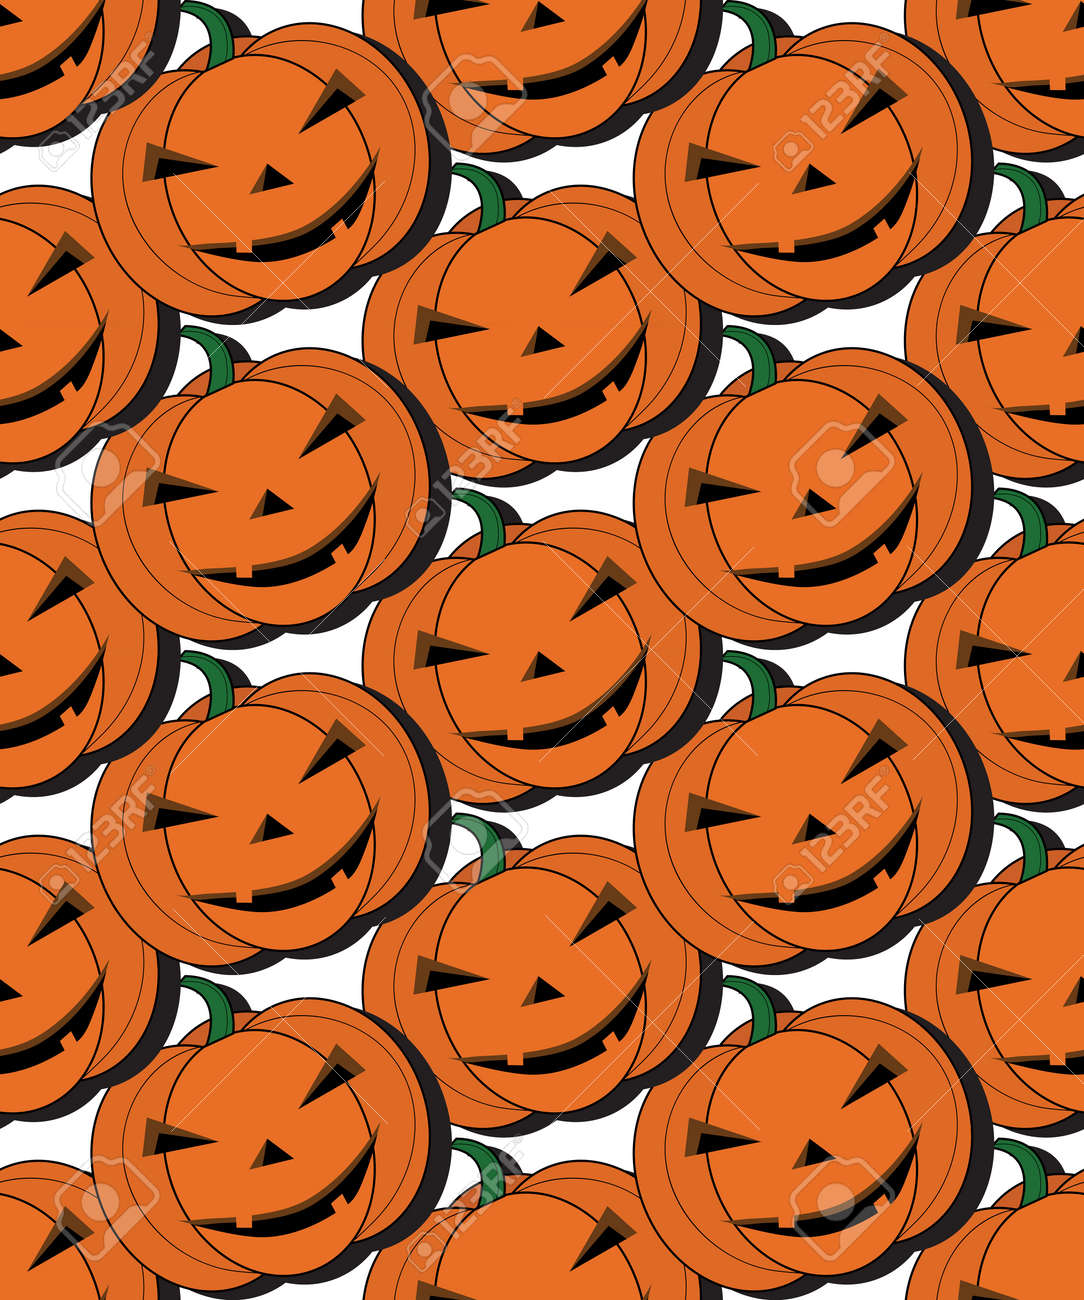 Seamless Pattern Pumpkin Cartoon For Halloween Card Wallpaper Royalty Free Cliparts Vectors And Stock Illustration Image 65042877